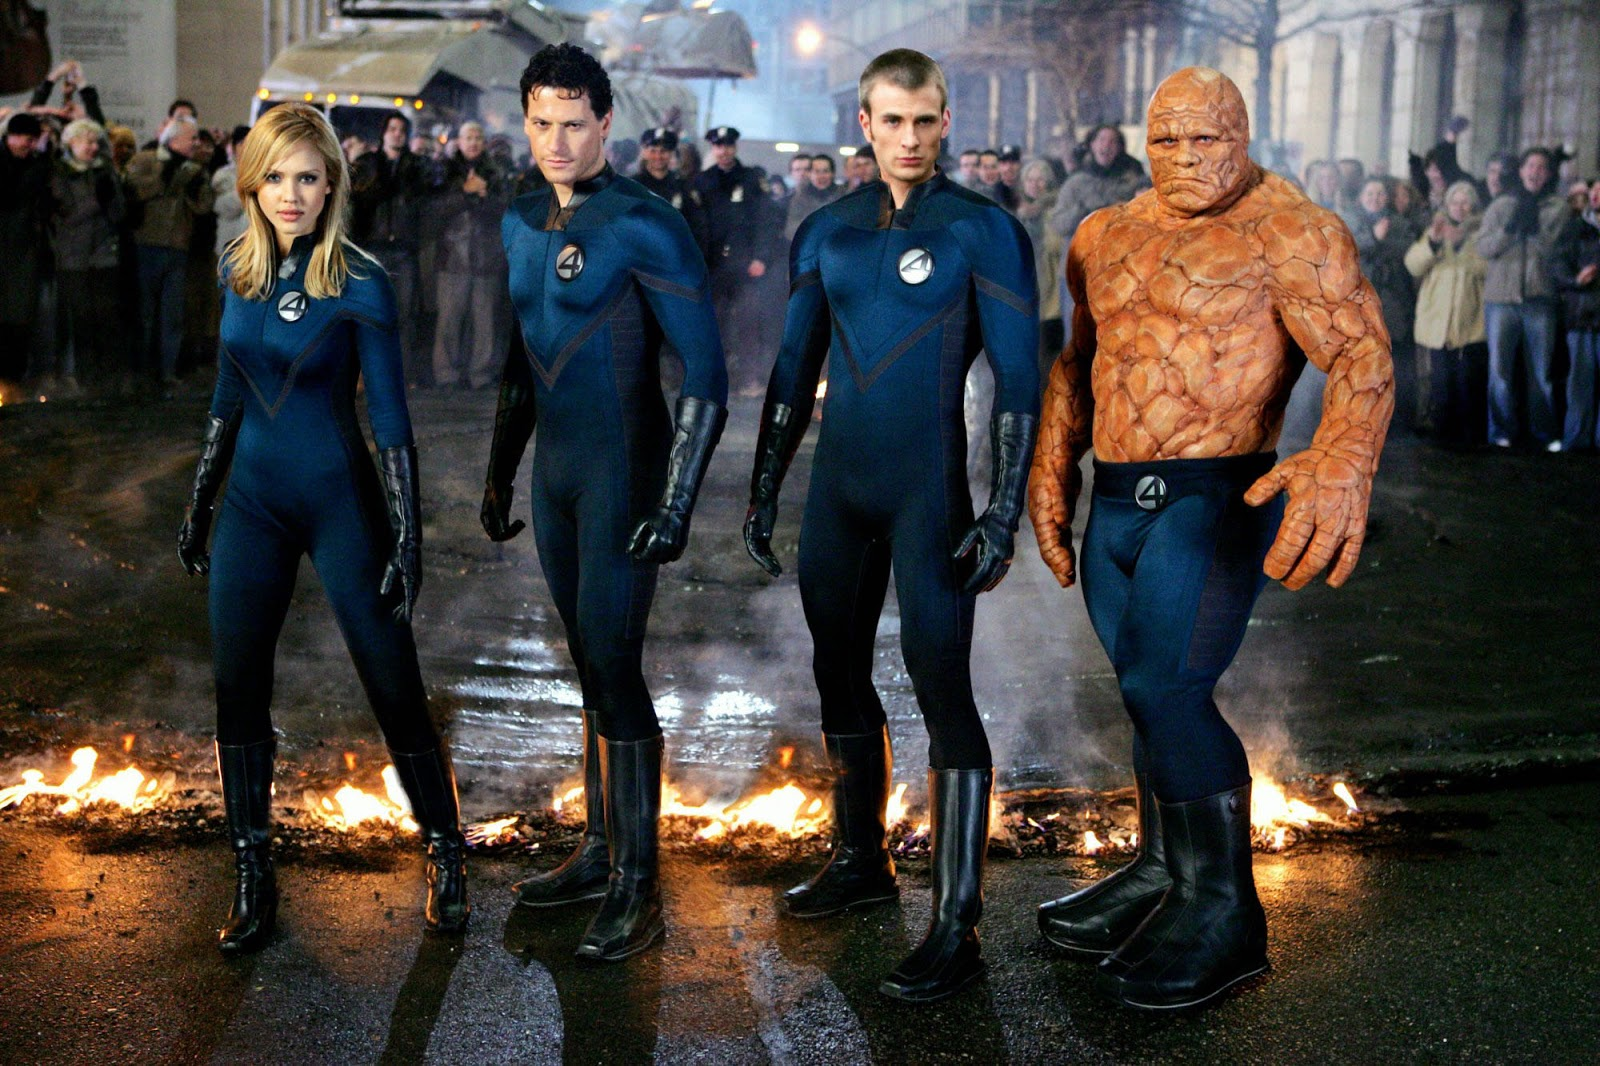 Susan Storm/Invisible Girl (Jessica Alba), Reed Richards/Mr Fantastic (Ioan Gruffudd), Johnny Storm/The Human Torch (Chris Evans), Ben Grimm/The Thing (Michael Chiklis) in Fantastic Four (2005)